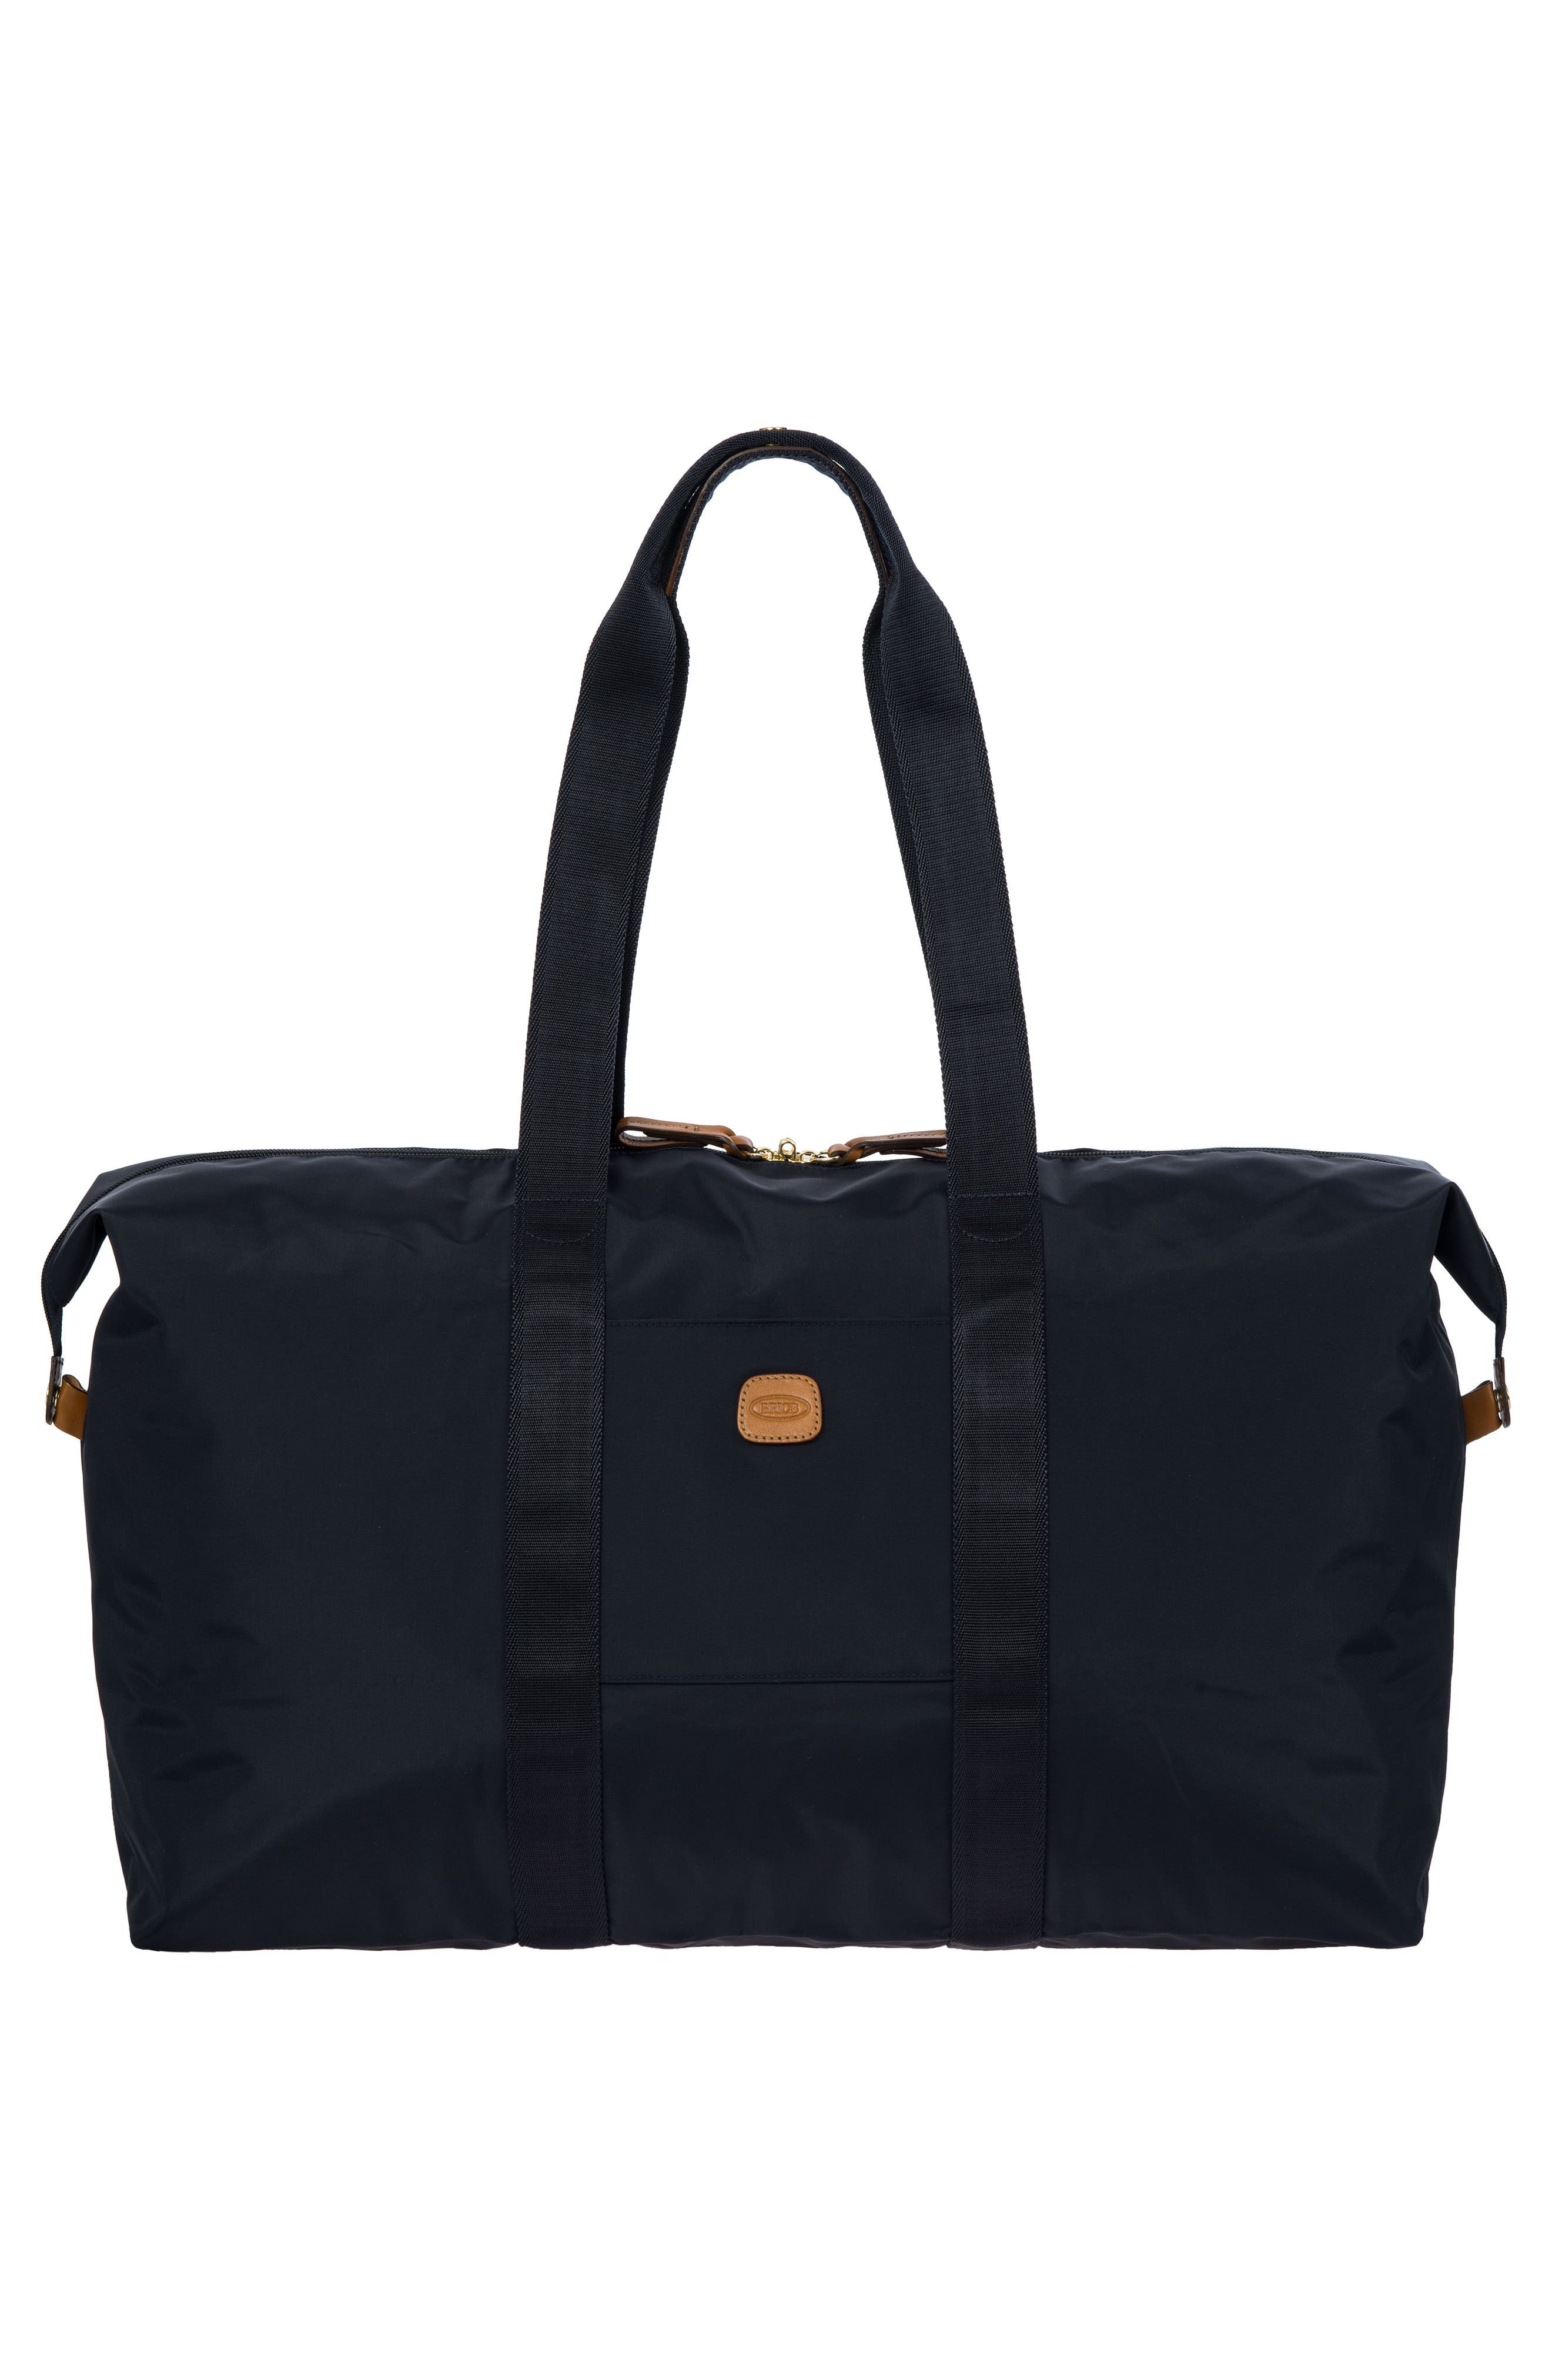 X-Bag 22-Inch Folding Duffel Bag,                         Main,                         color, Navy